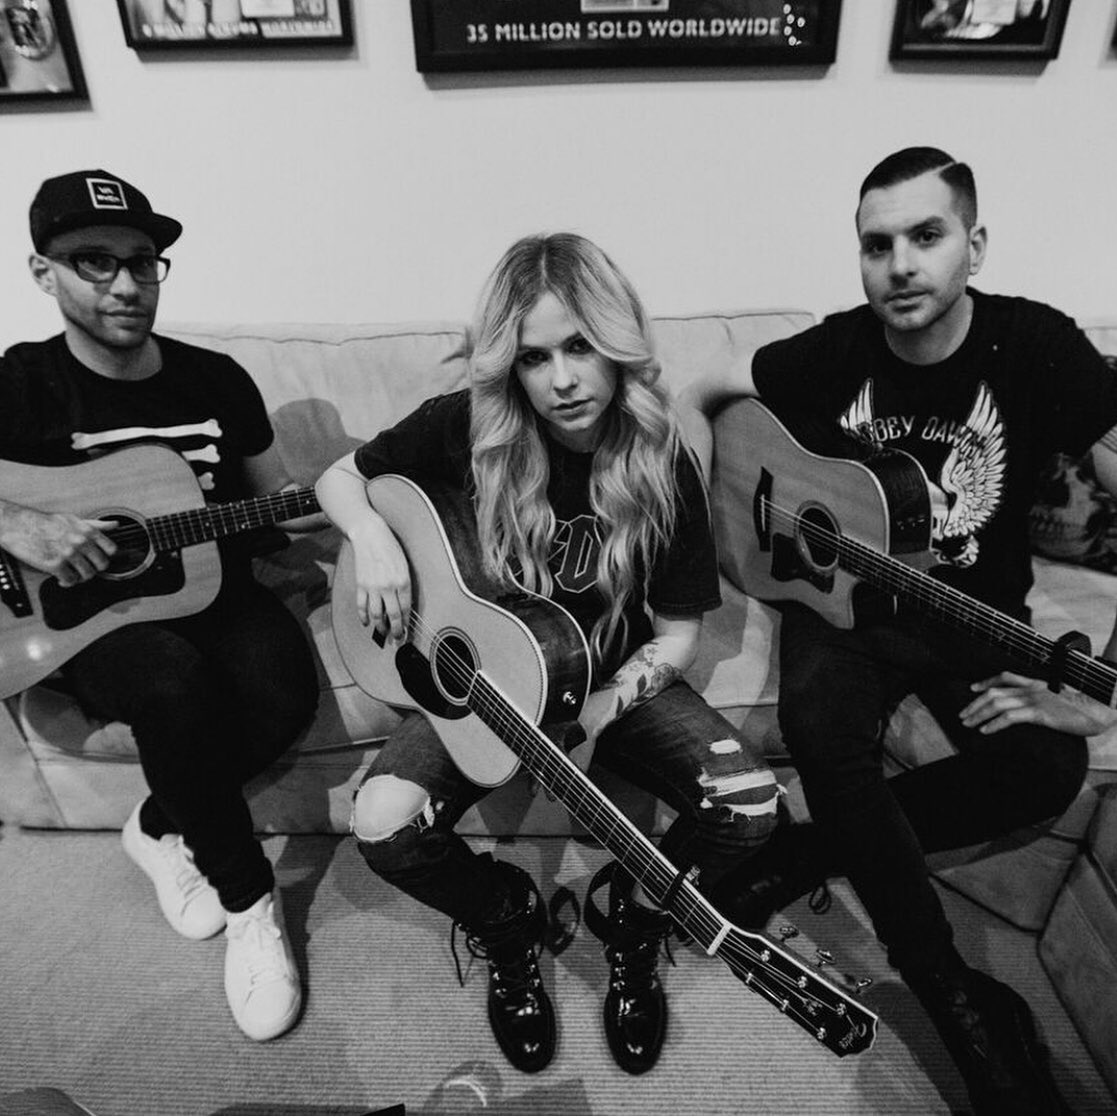 And learning NEW SONGS with my boys @DavidImmerman @AModernAnimal #fender #abbeydawn